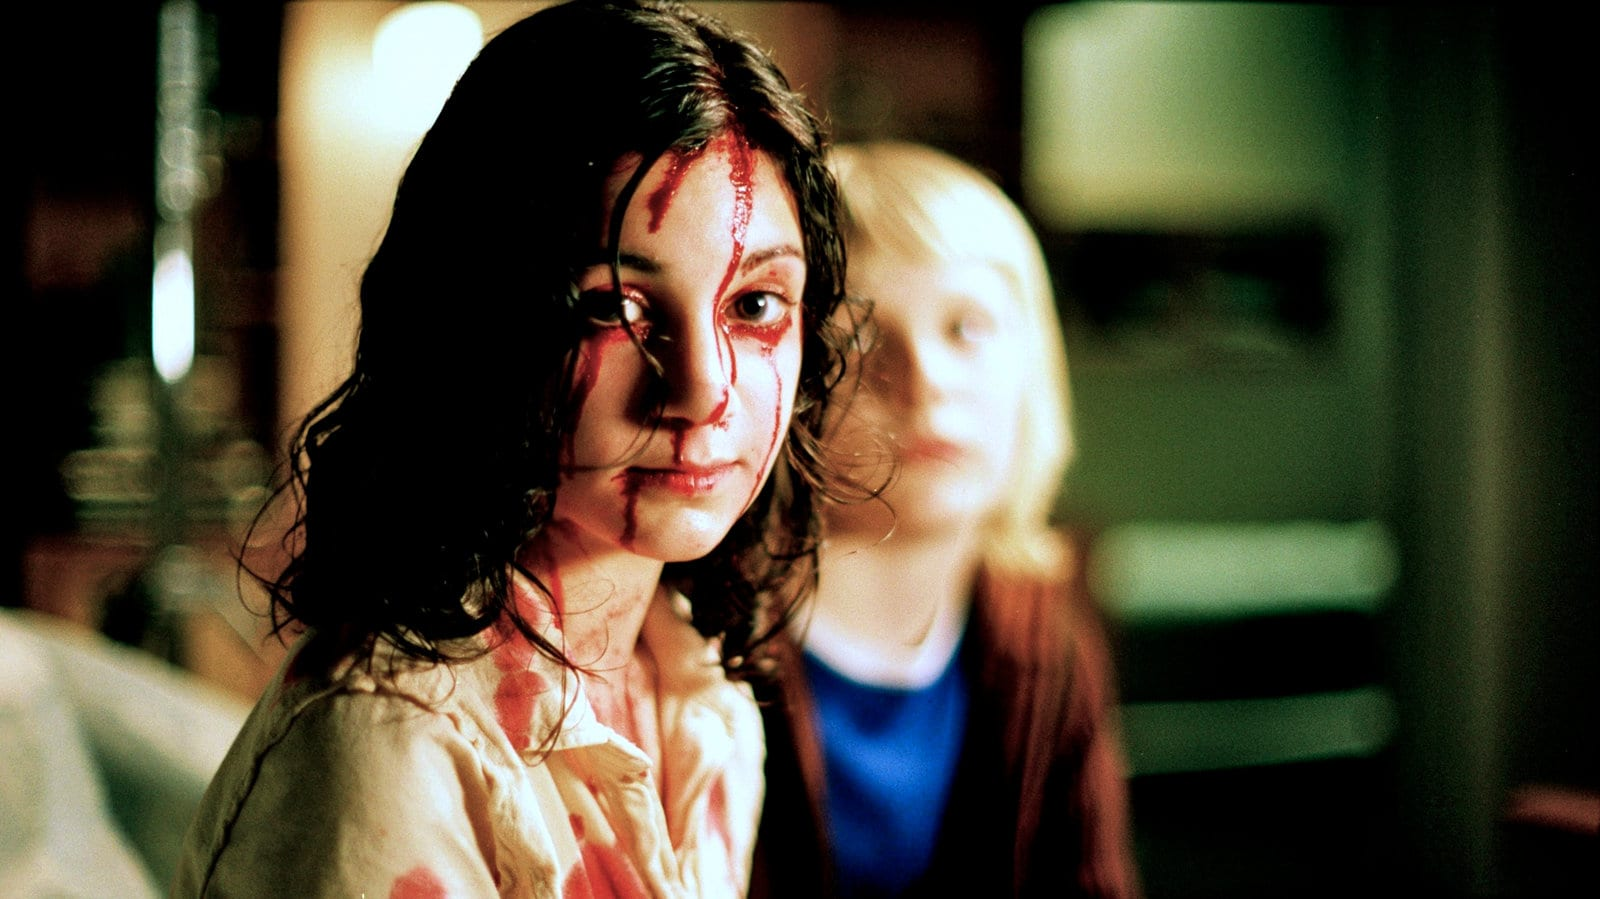 A still from Let the Right one in showing Eli with blood on her face and Oskar in the background